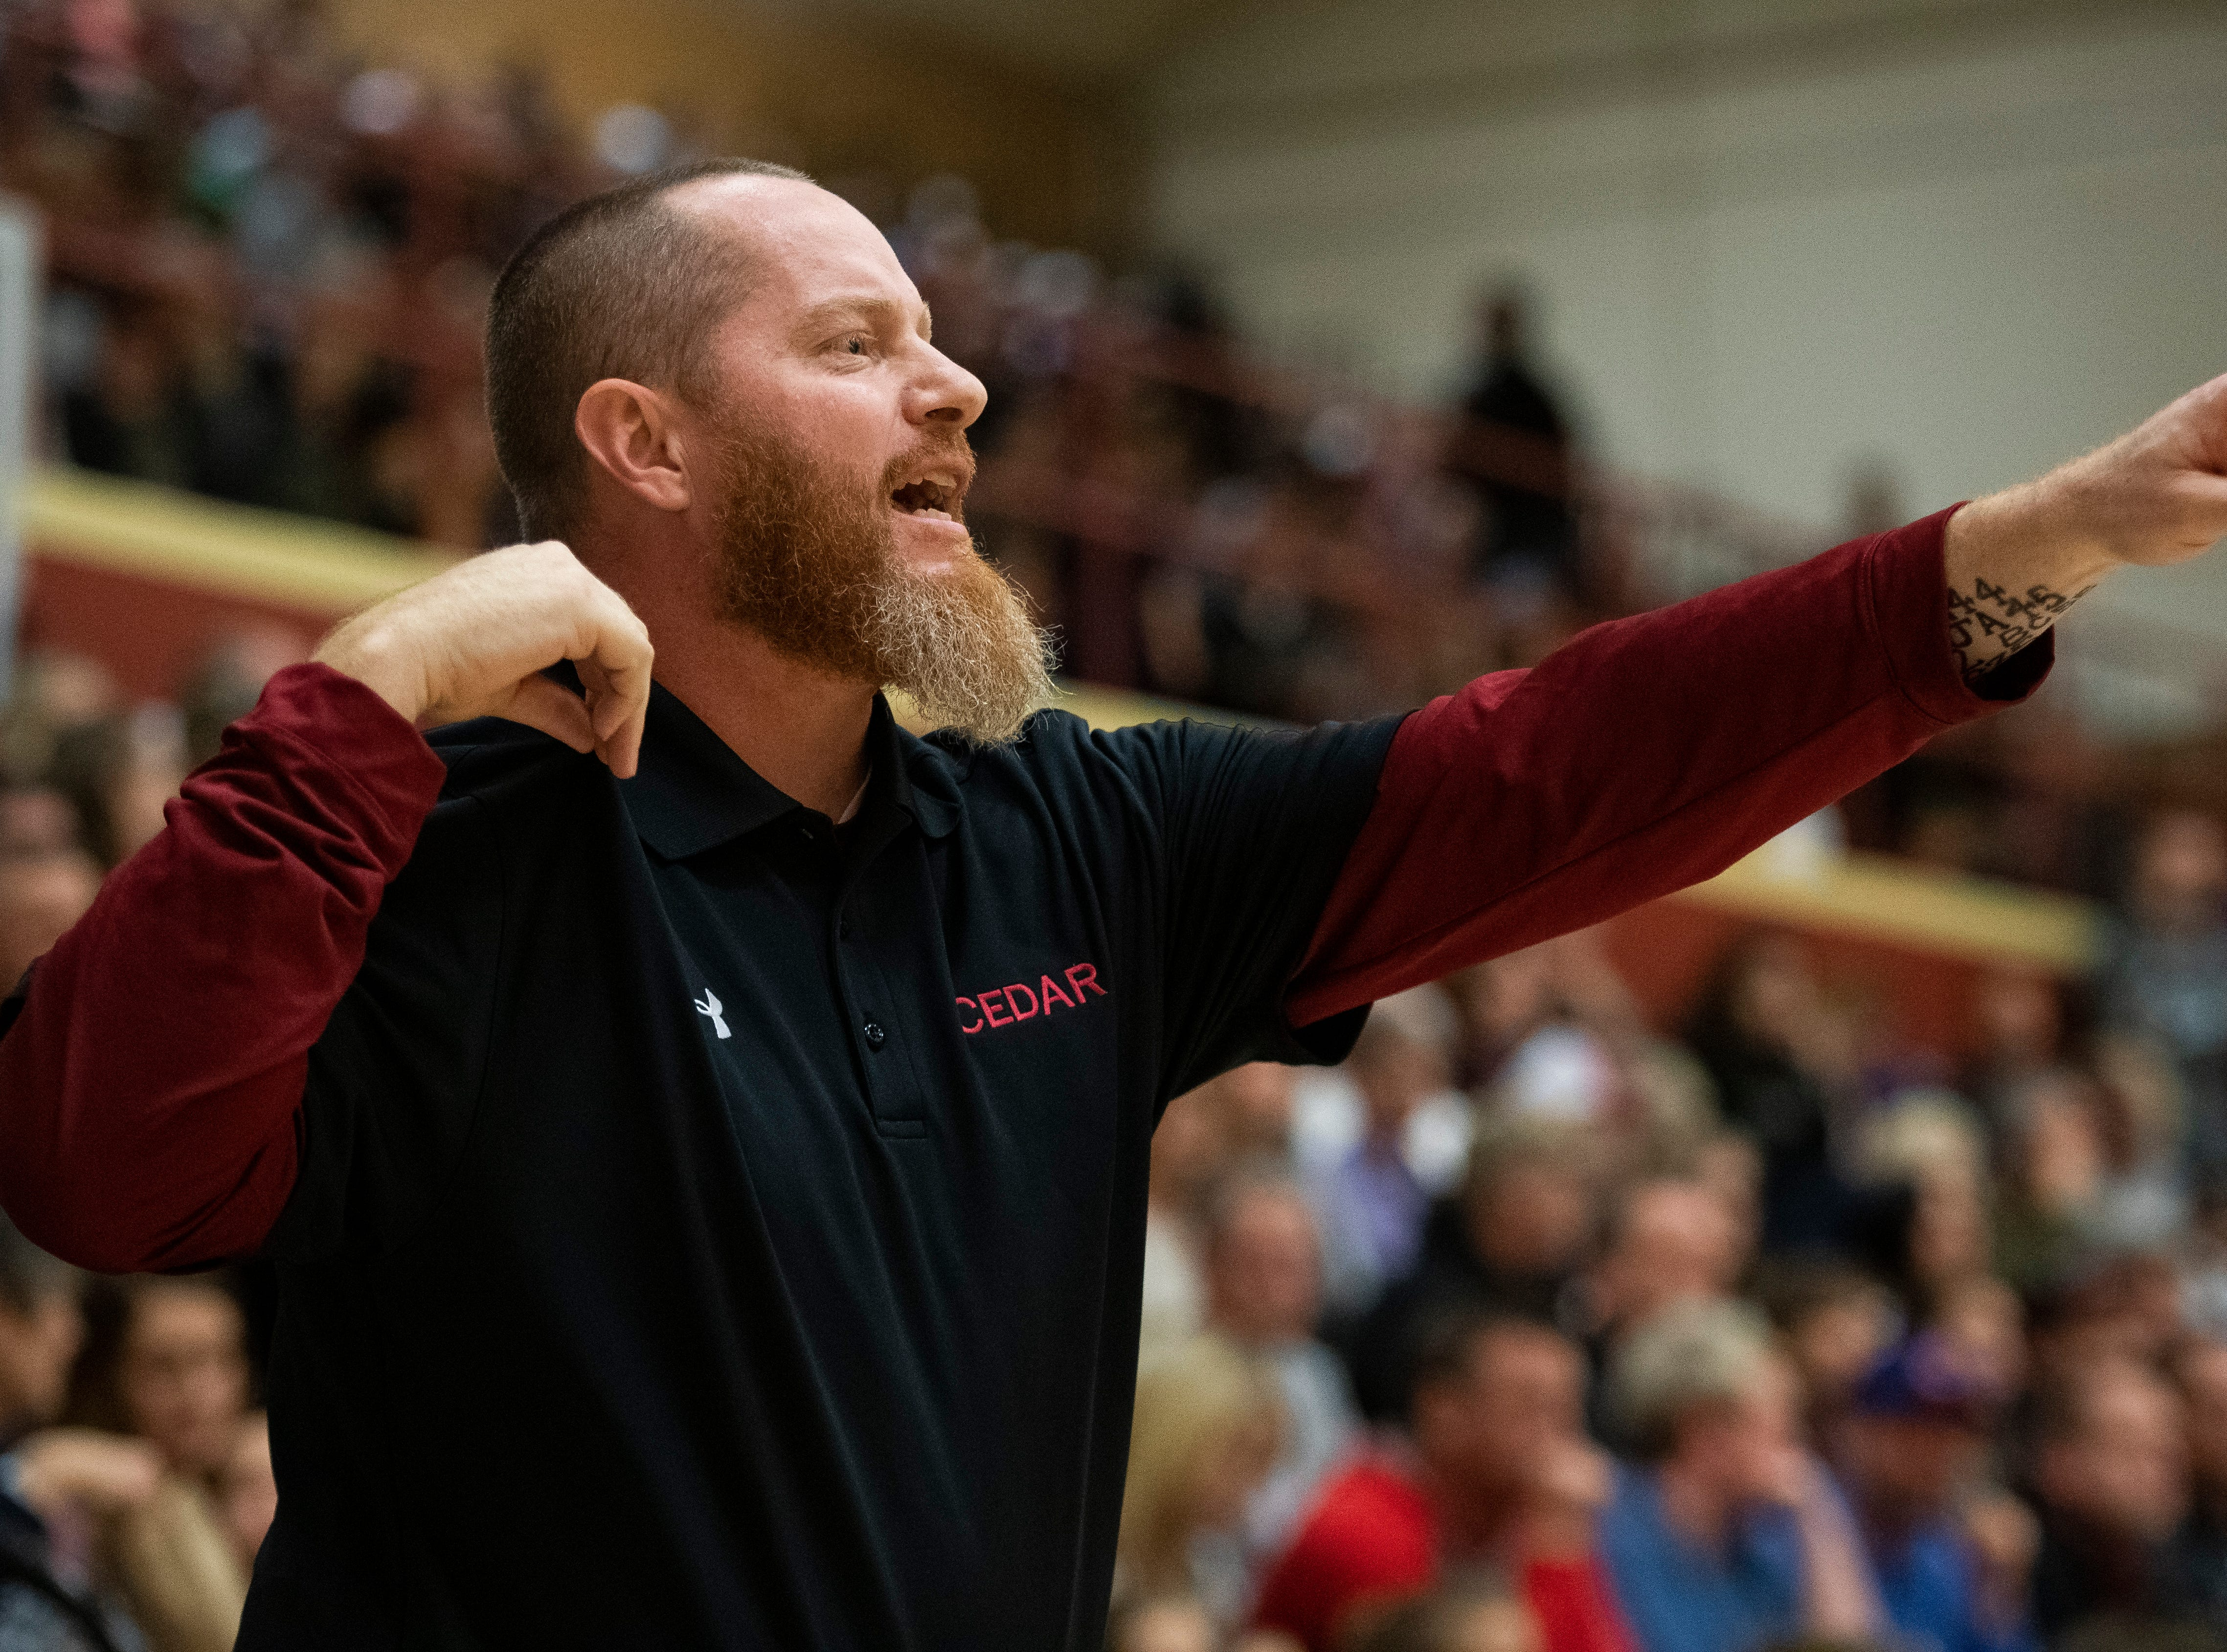 Cedar High School head coach Russ Beck calls a play against Canyon View at CHS Friday, January 11, 2019. Canyon View won, 61-56.